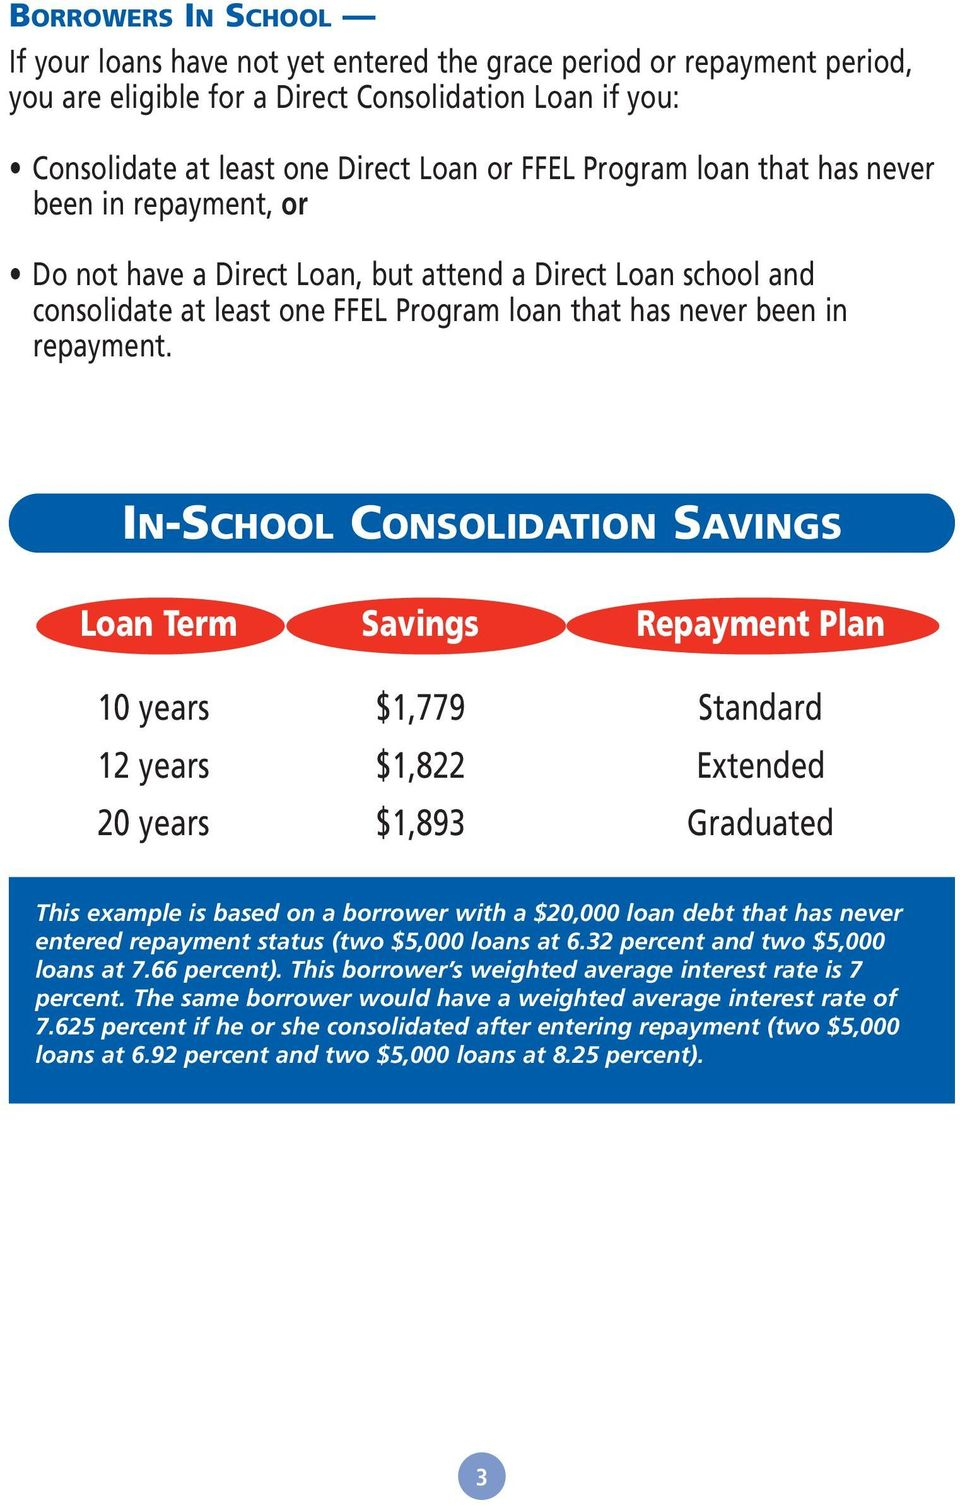 IN-SCHOOL CONSOLIDATION SAVINGS Loan Term Savings Repayment Plan 10 years $1,779 Standard 12 years $1,822 Extended 20 years $1,893 Graduated This example is based on a borrower with a $20,000 loan